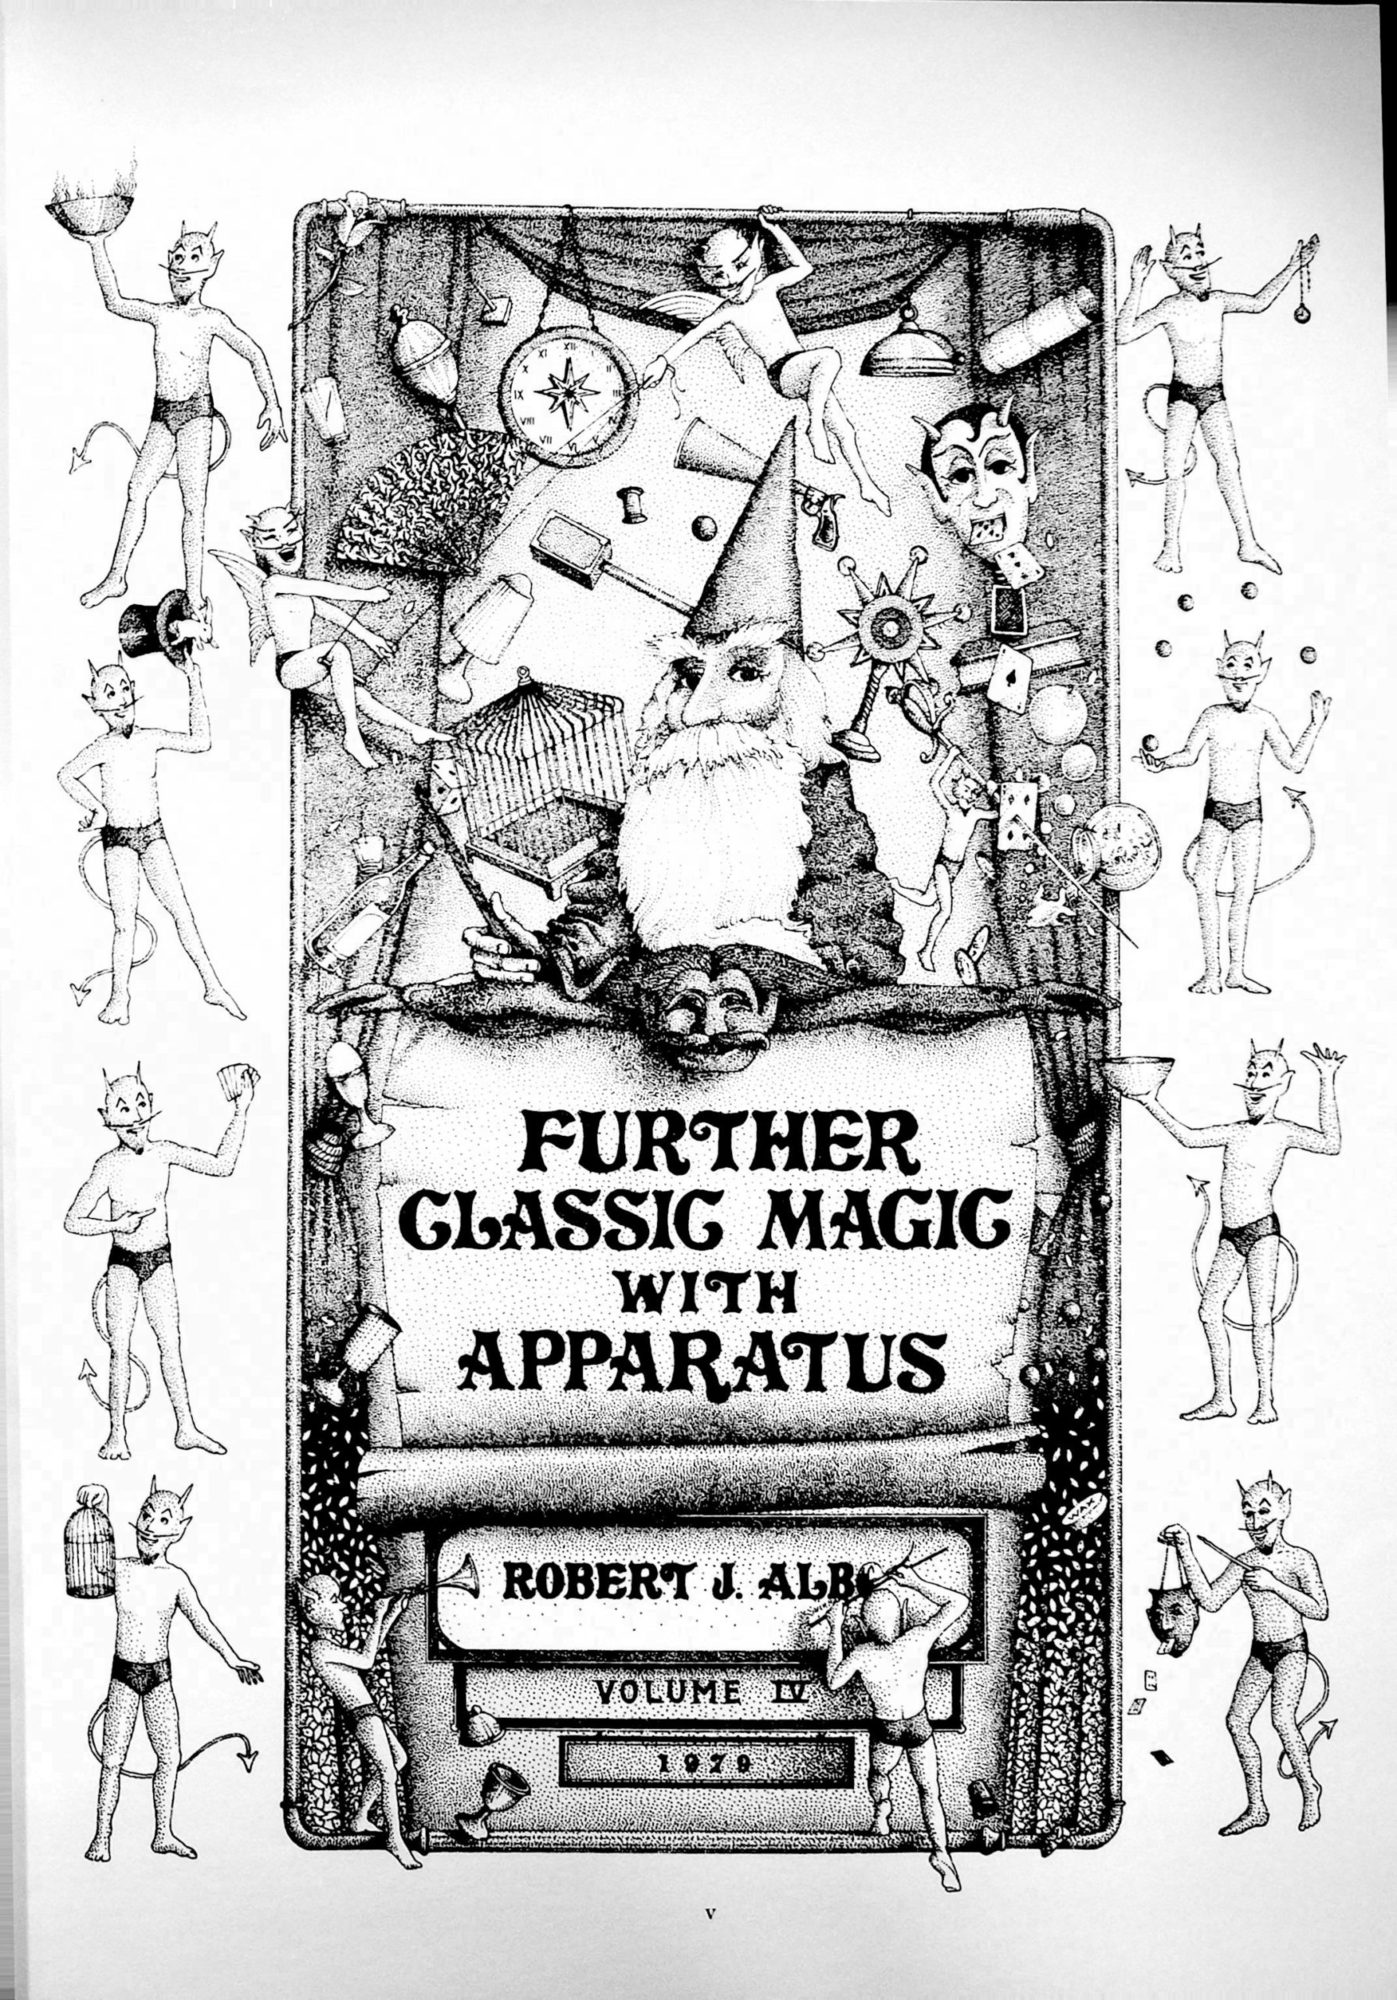 Albo 04 - Further Classic Magic With Apparatus by Robert J. Albo